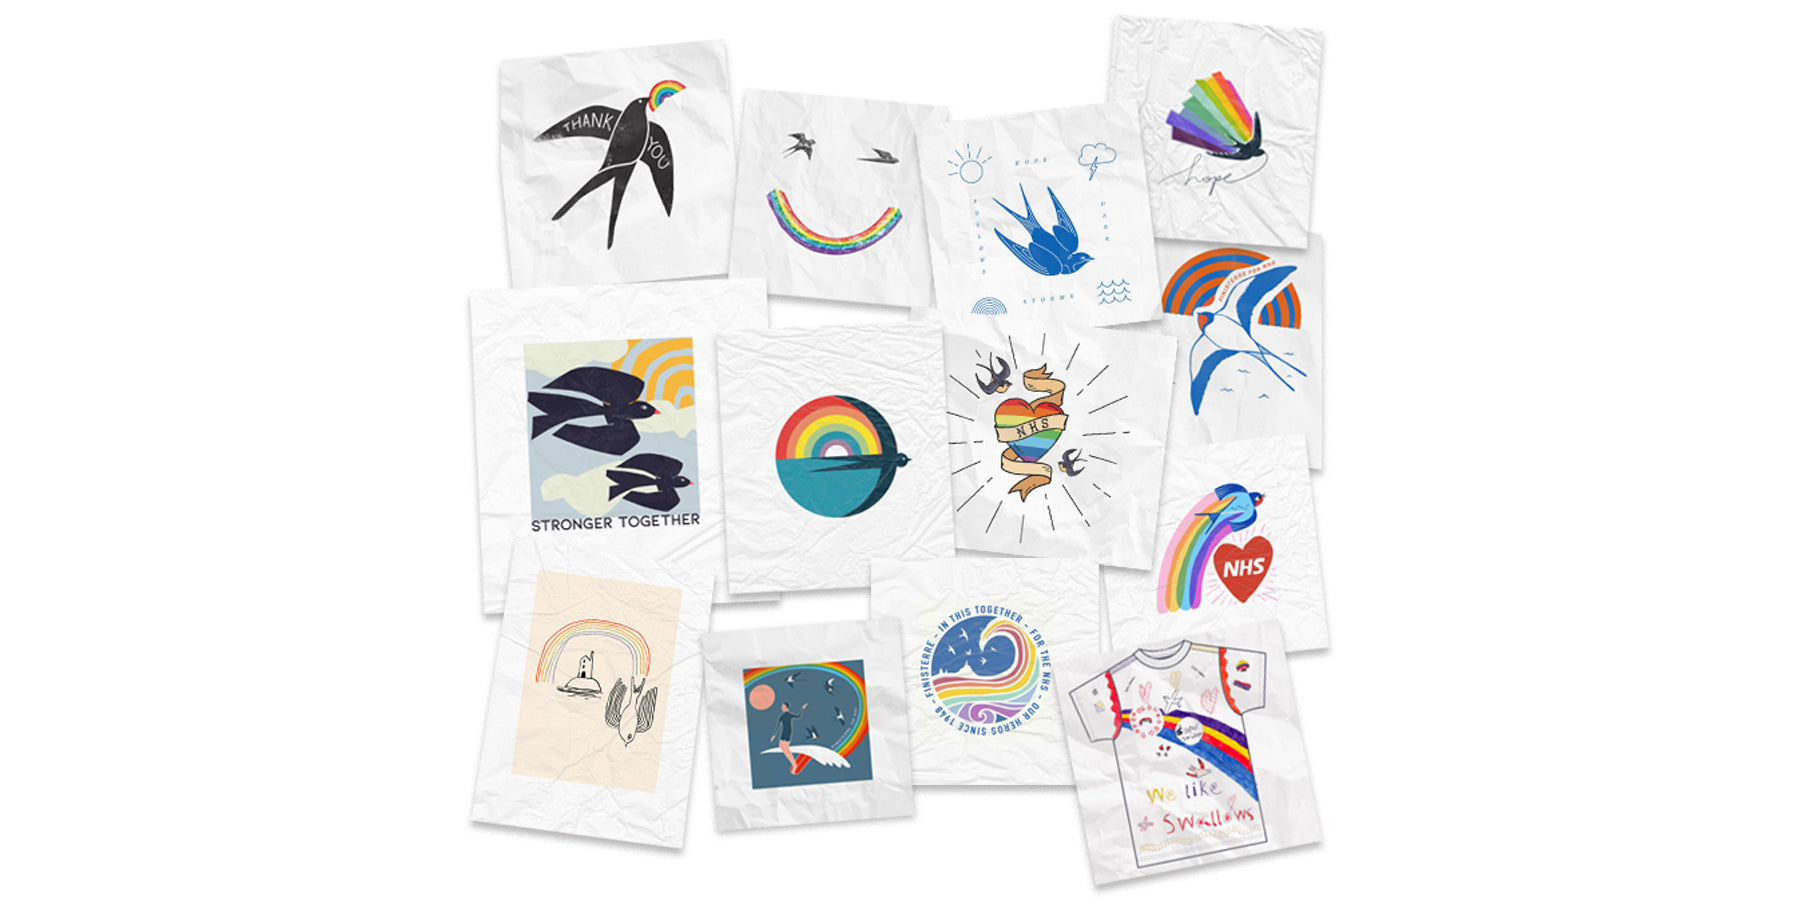 Collage of some of our favourite entries in the #FinisterreForNHS tee design competition